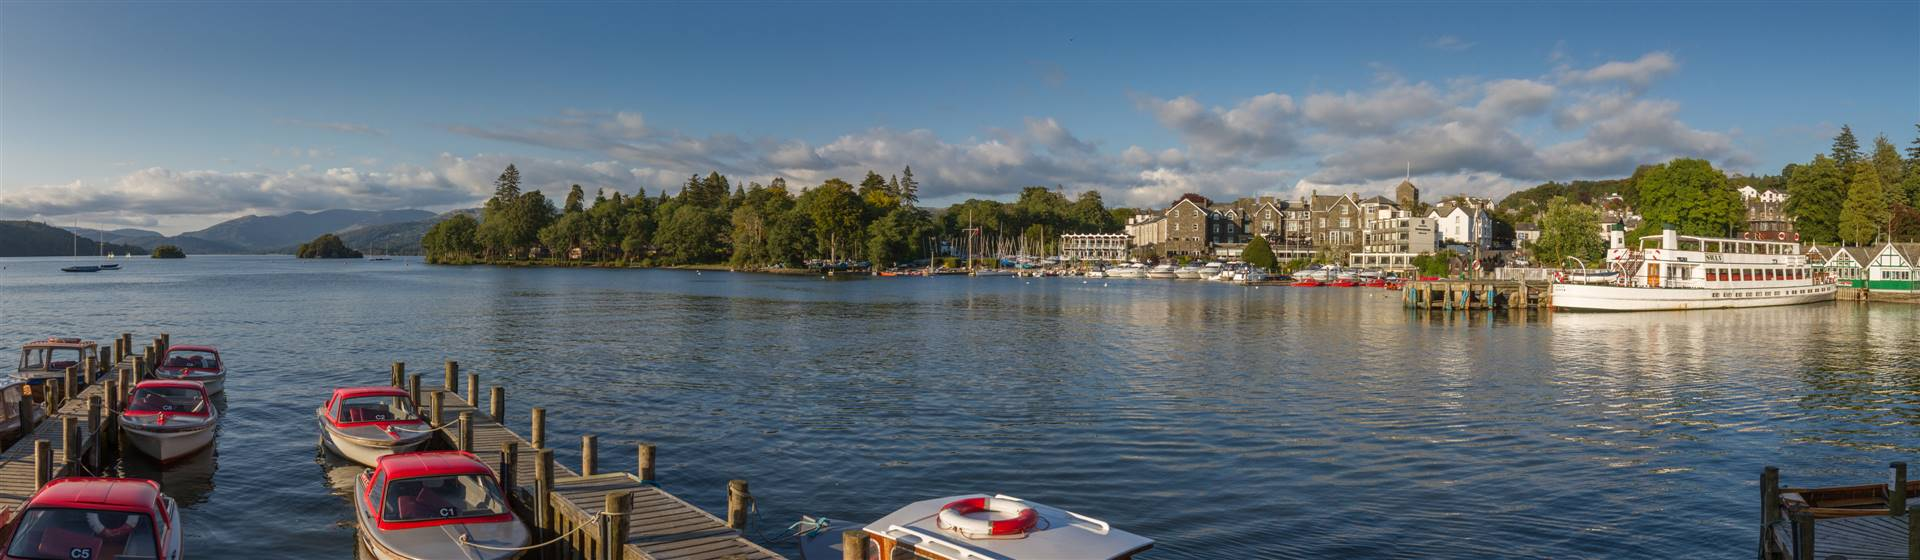 "<img src=""bownessonwindermere-shutterstock.jpeg"" alt=""Bowness on Windermere""/>"